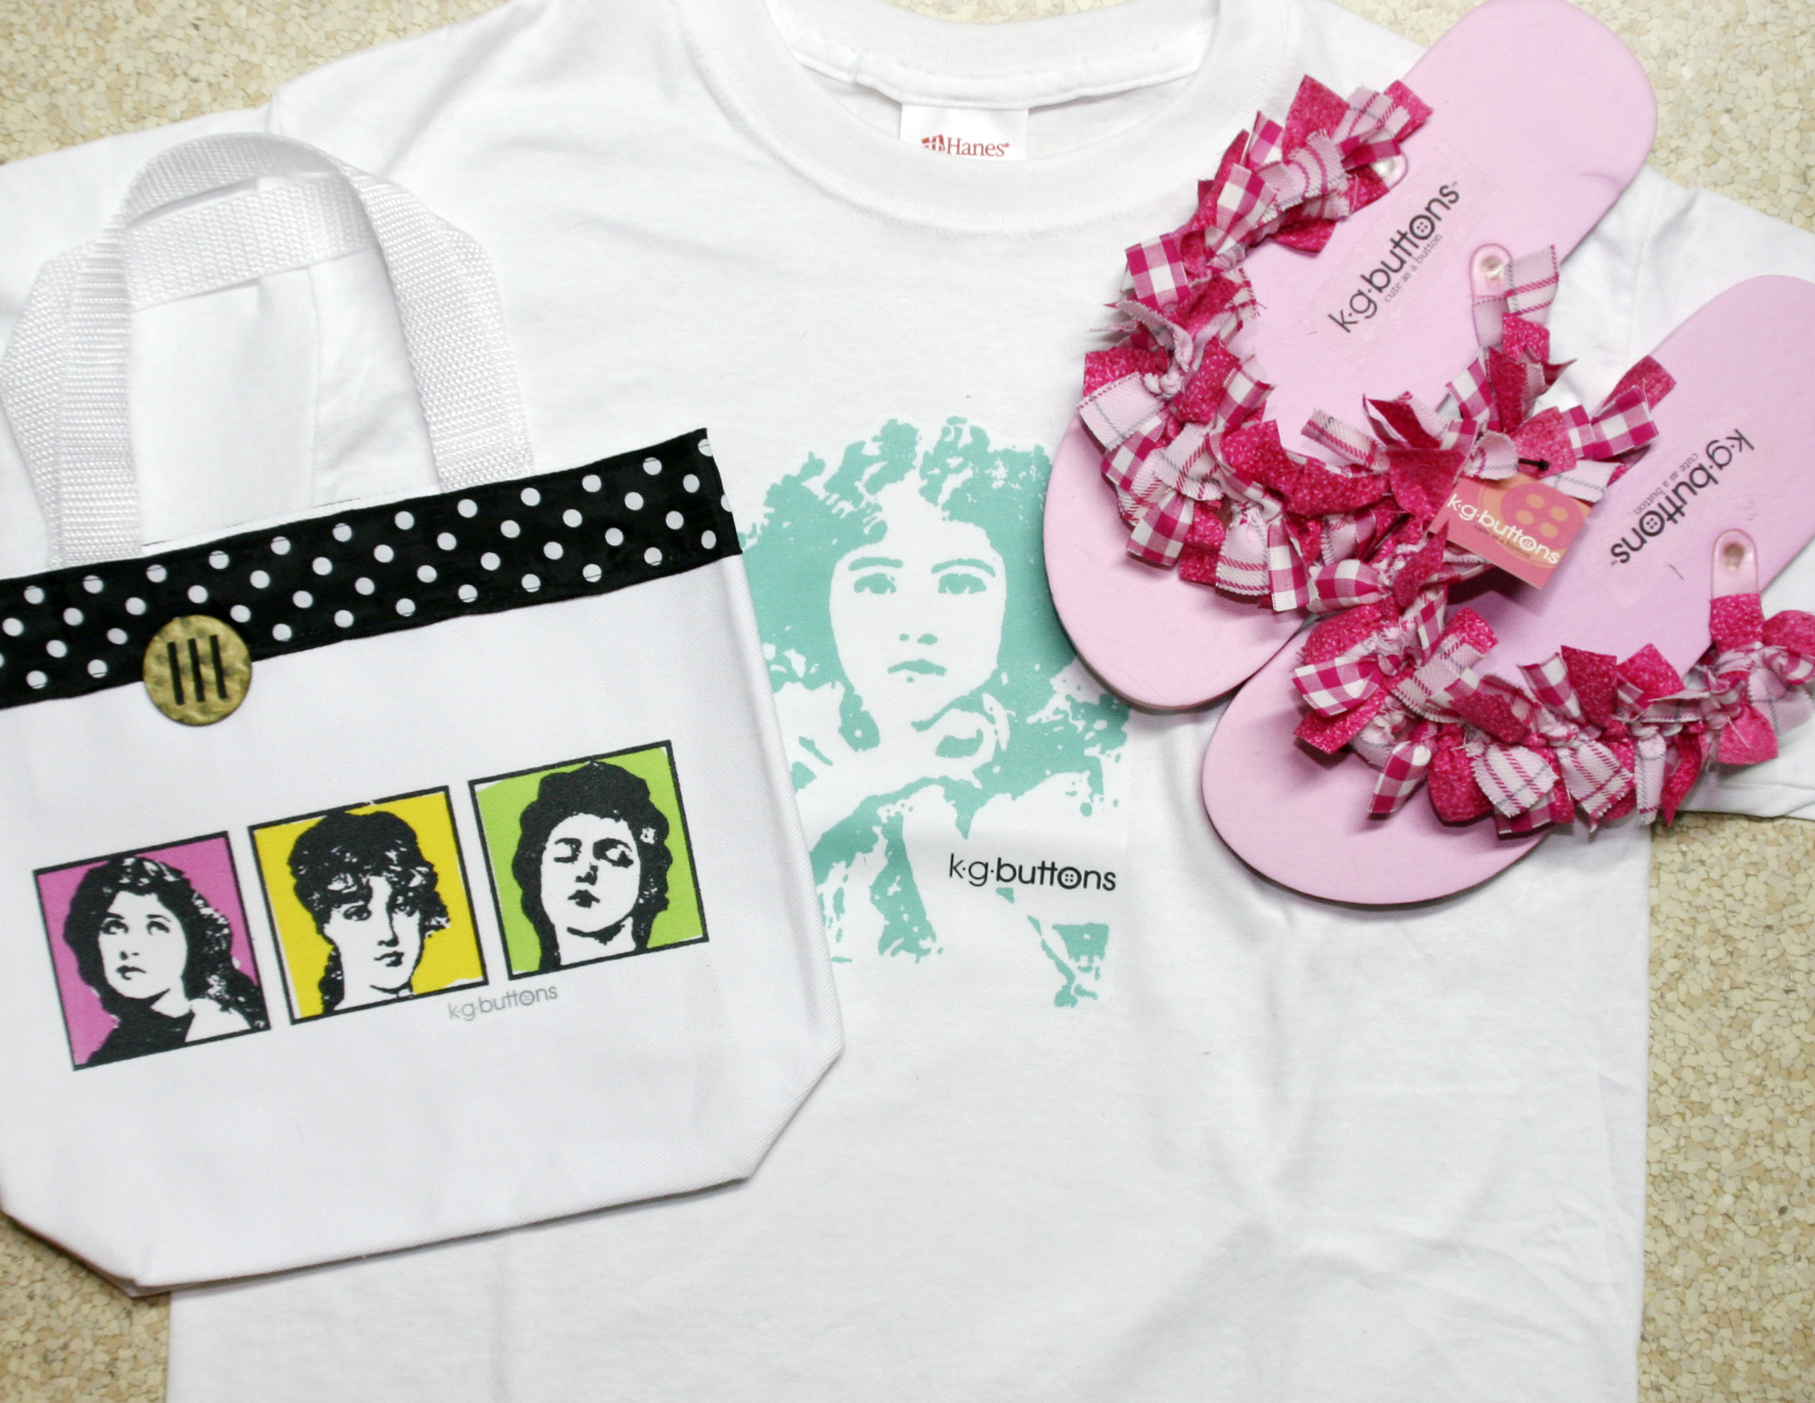 kgbuttons shirt, hand bag, shoe design